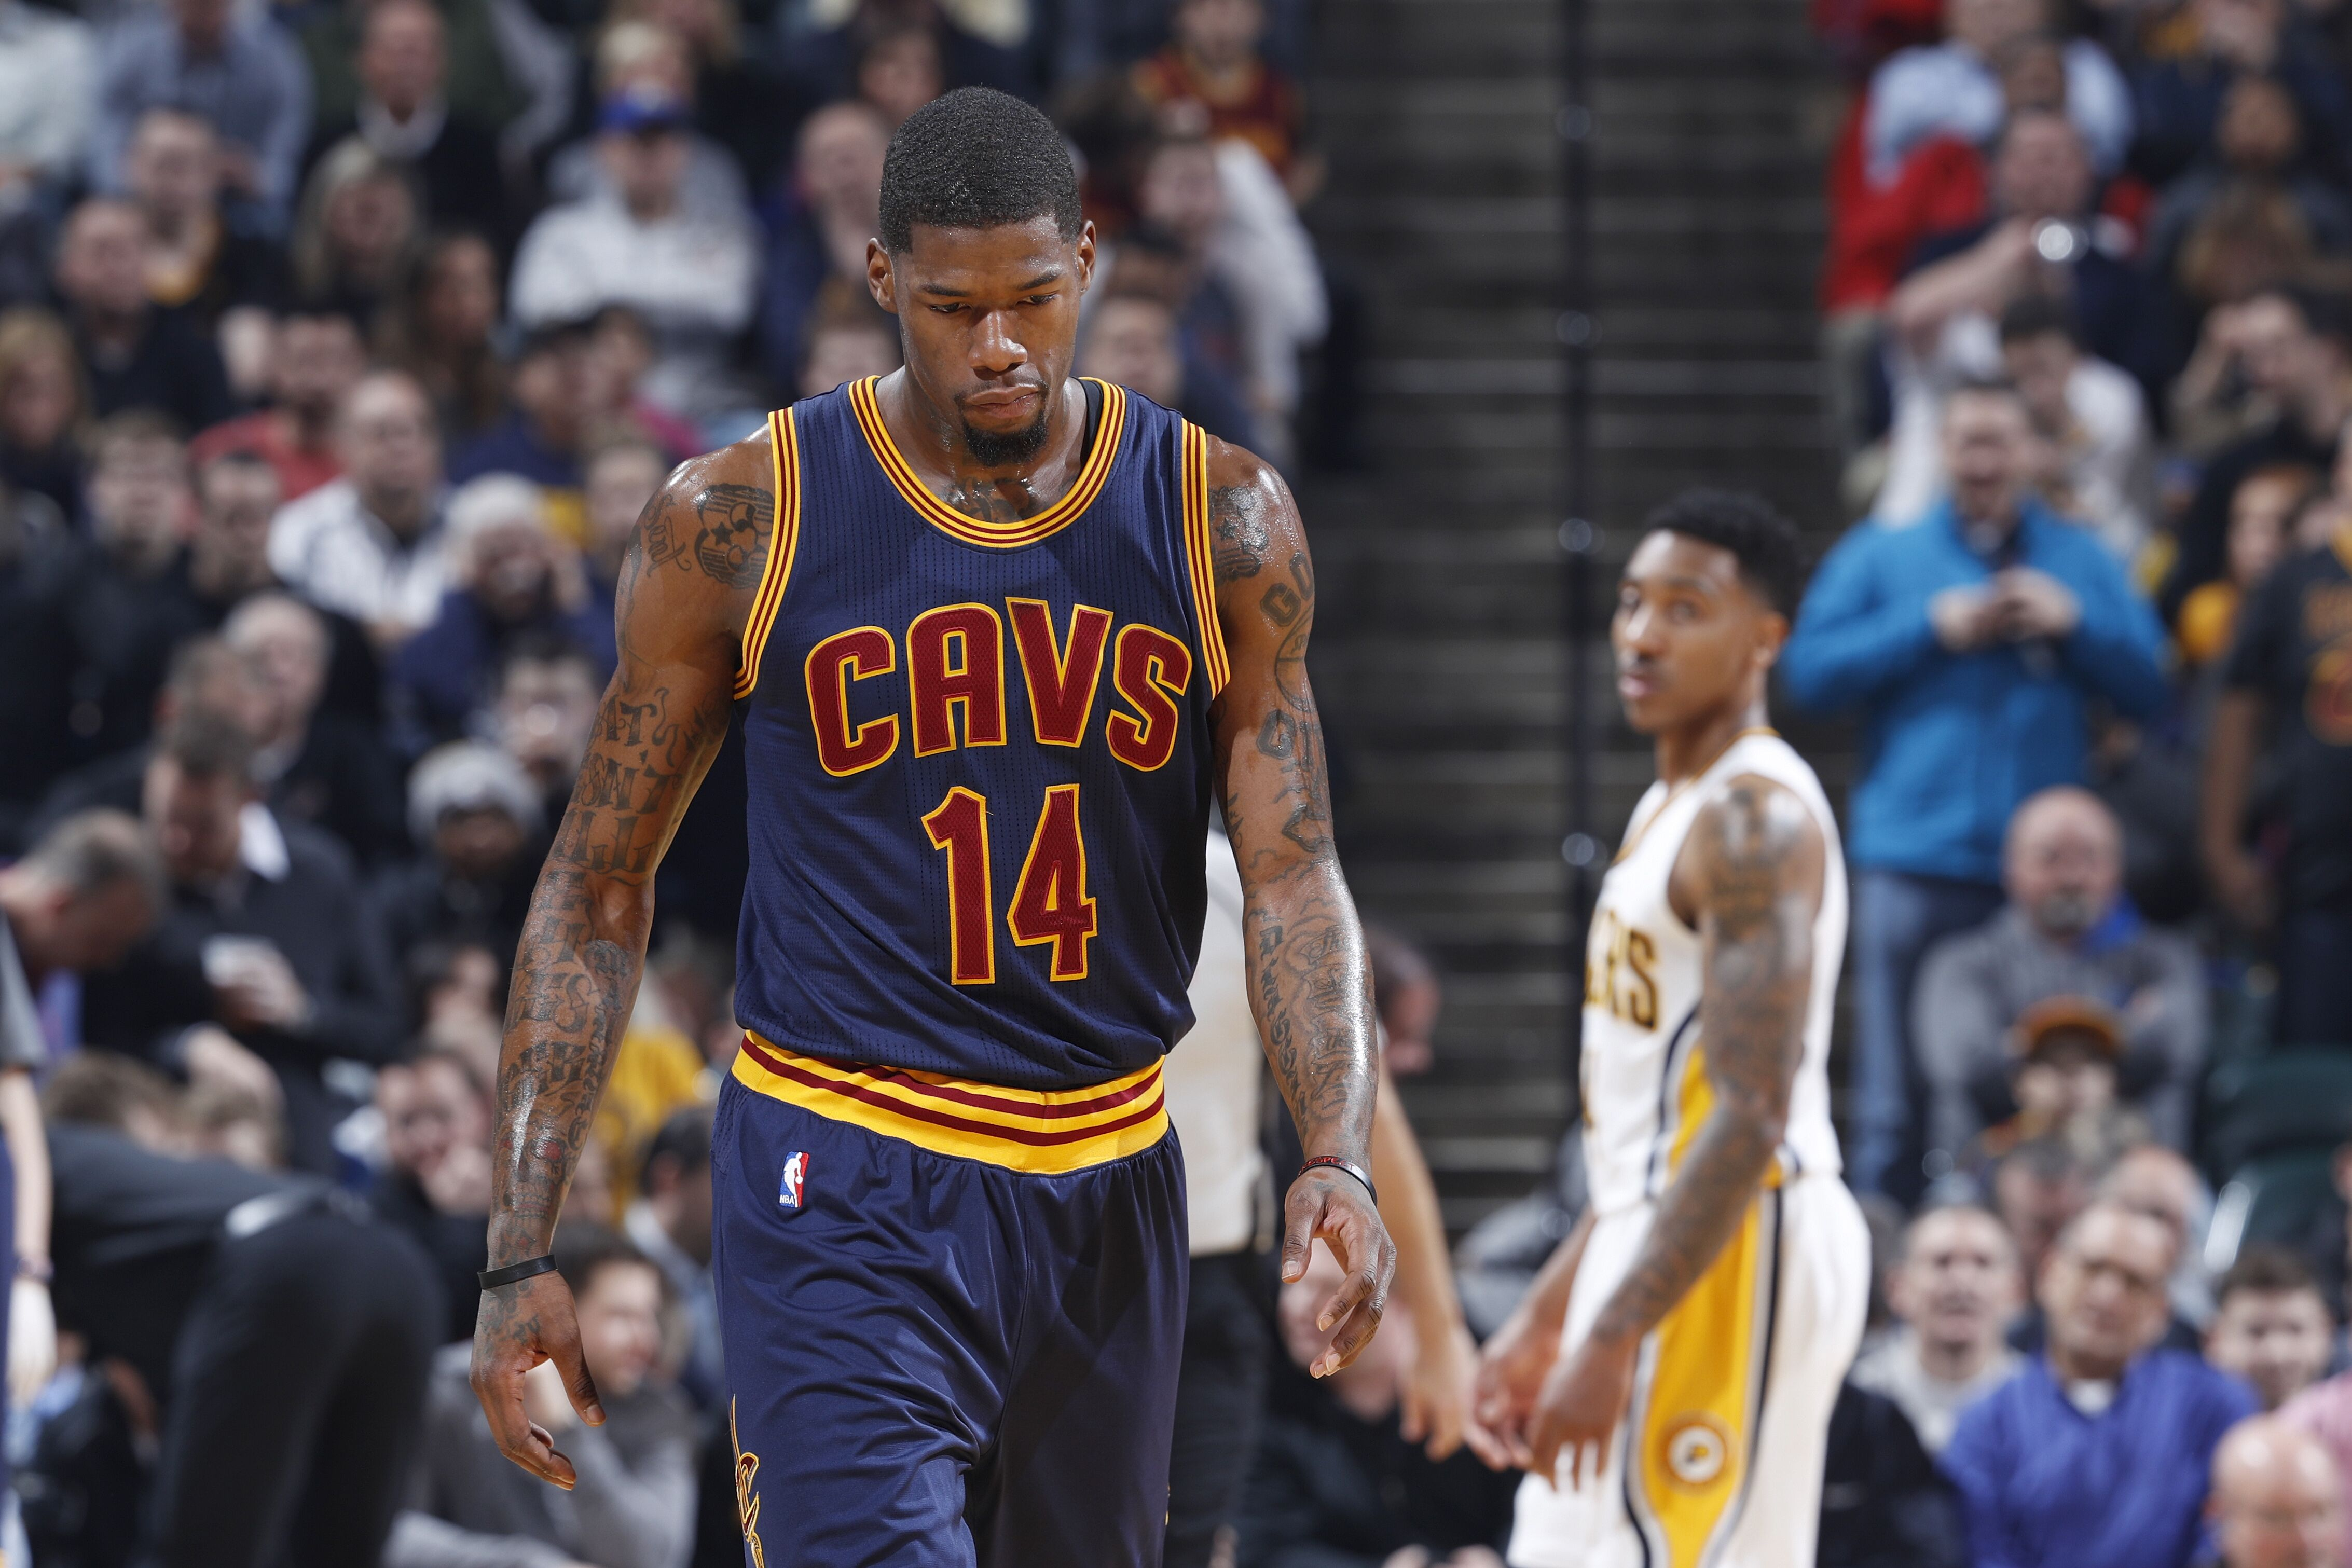 641518360-cleveland-cavaliers-v-indiana-pacers.jpg